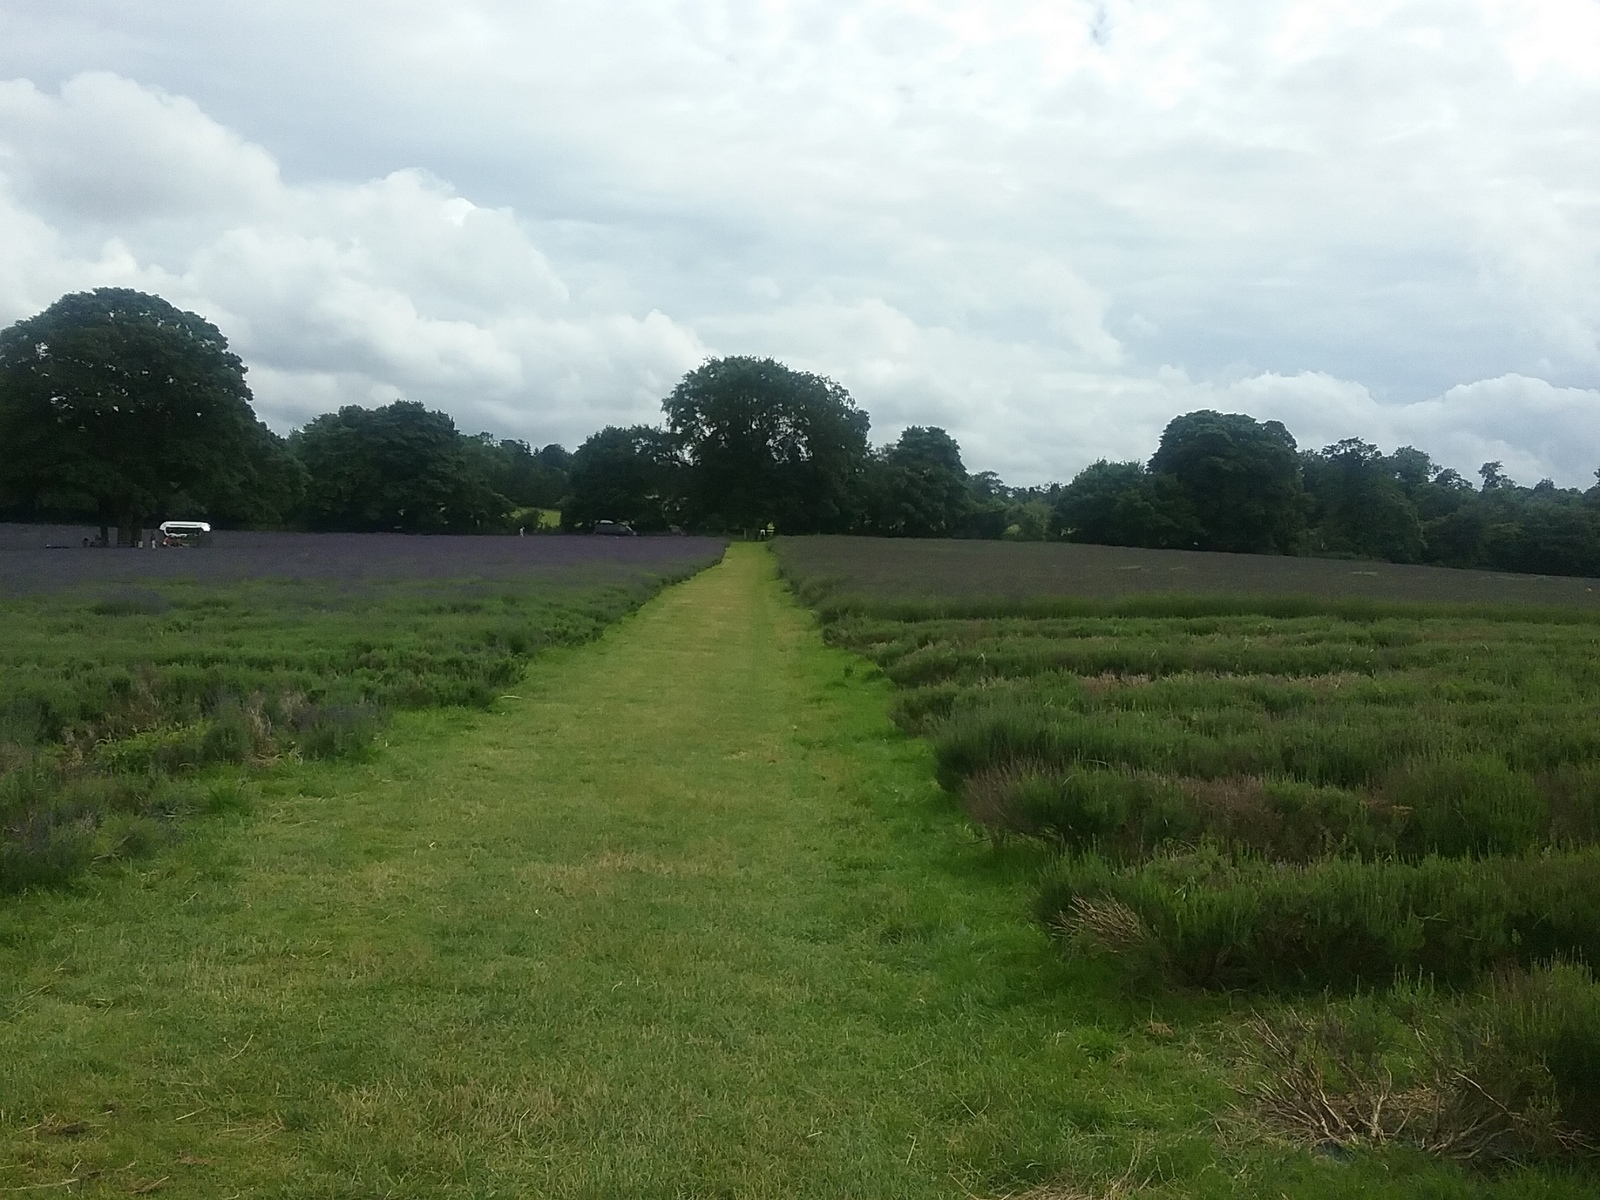 20160630_155656 Public footpath across Mayfield Farm lavender fields